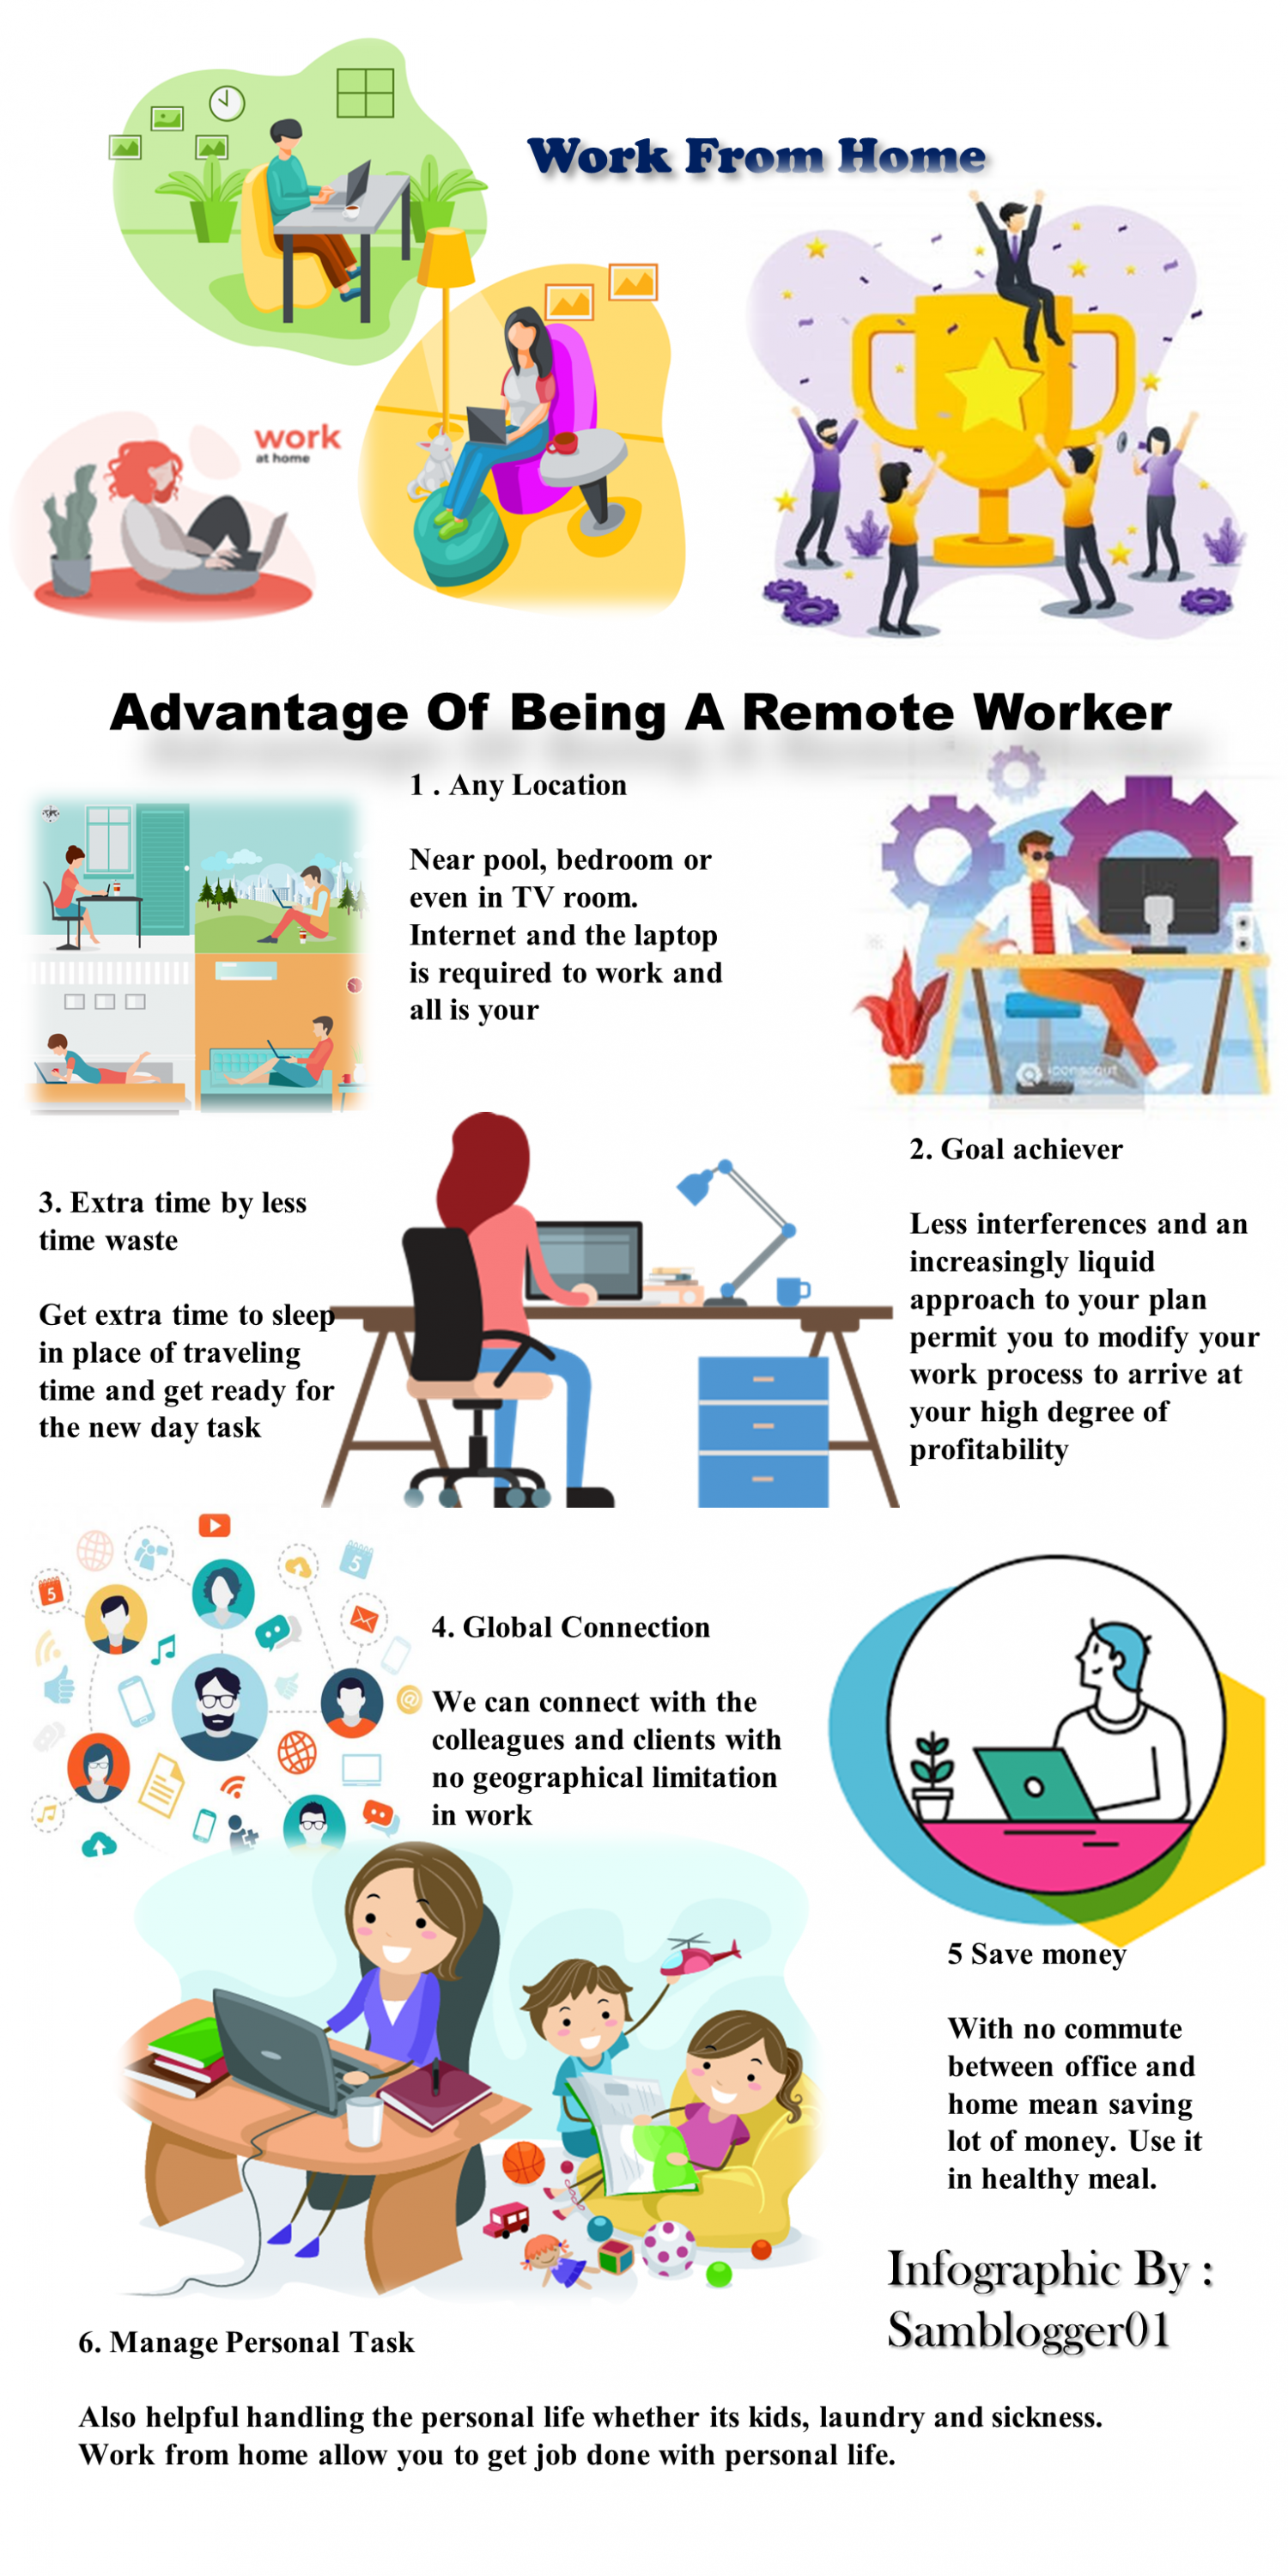 Advantage of Work from Home in 2020 ( COVID-19 Pandemic) Infographic